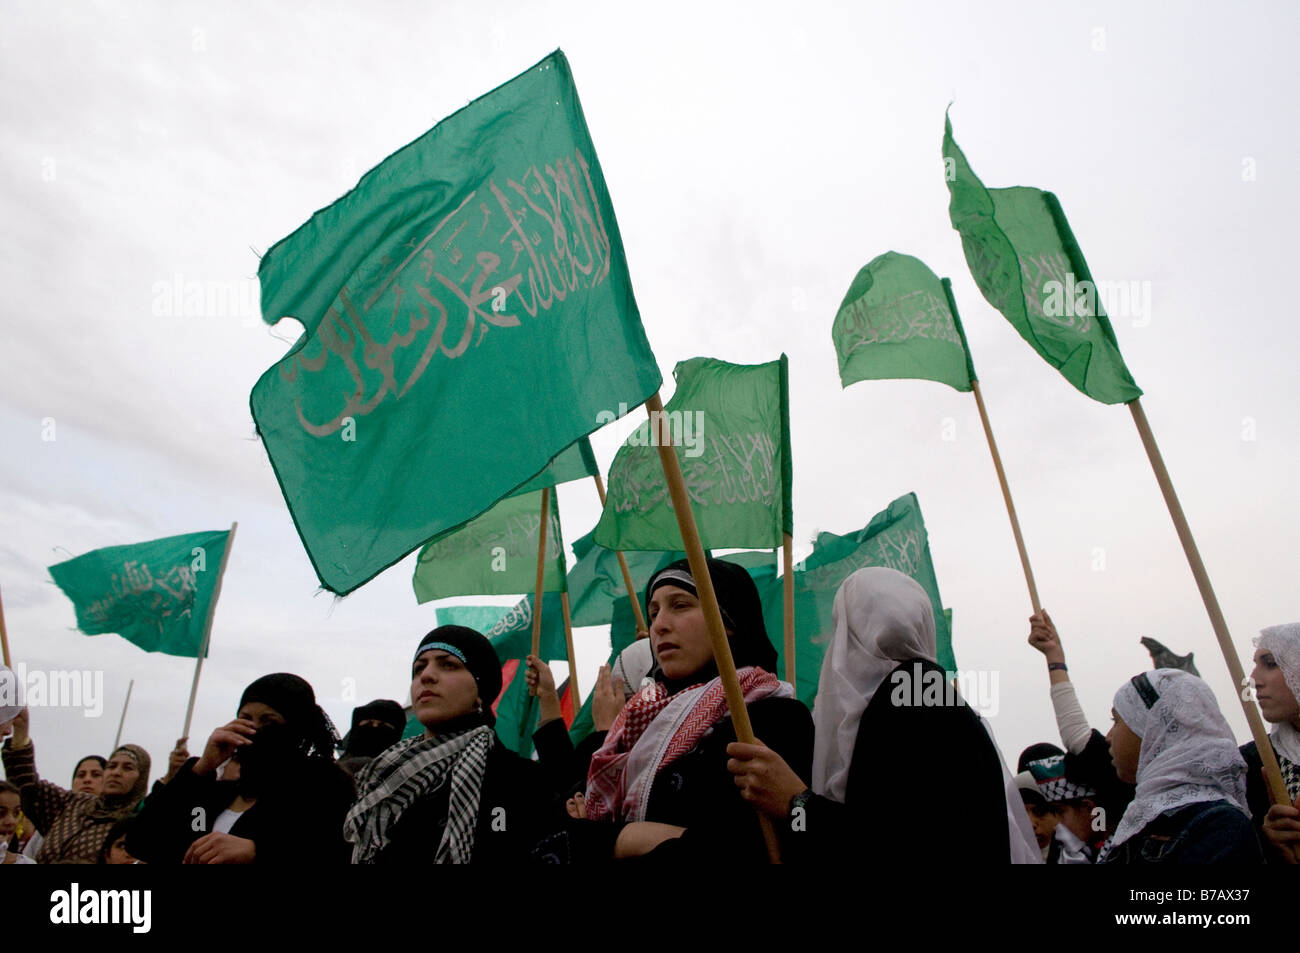 Bedouin women wave green Islamic flags in the Negev village of Ar'arat an-Naqab during a protest against Israel's Stock Photo